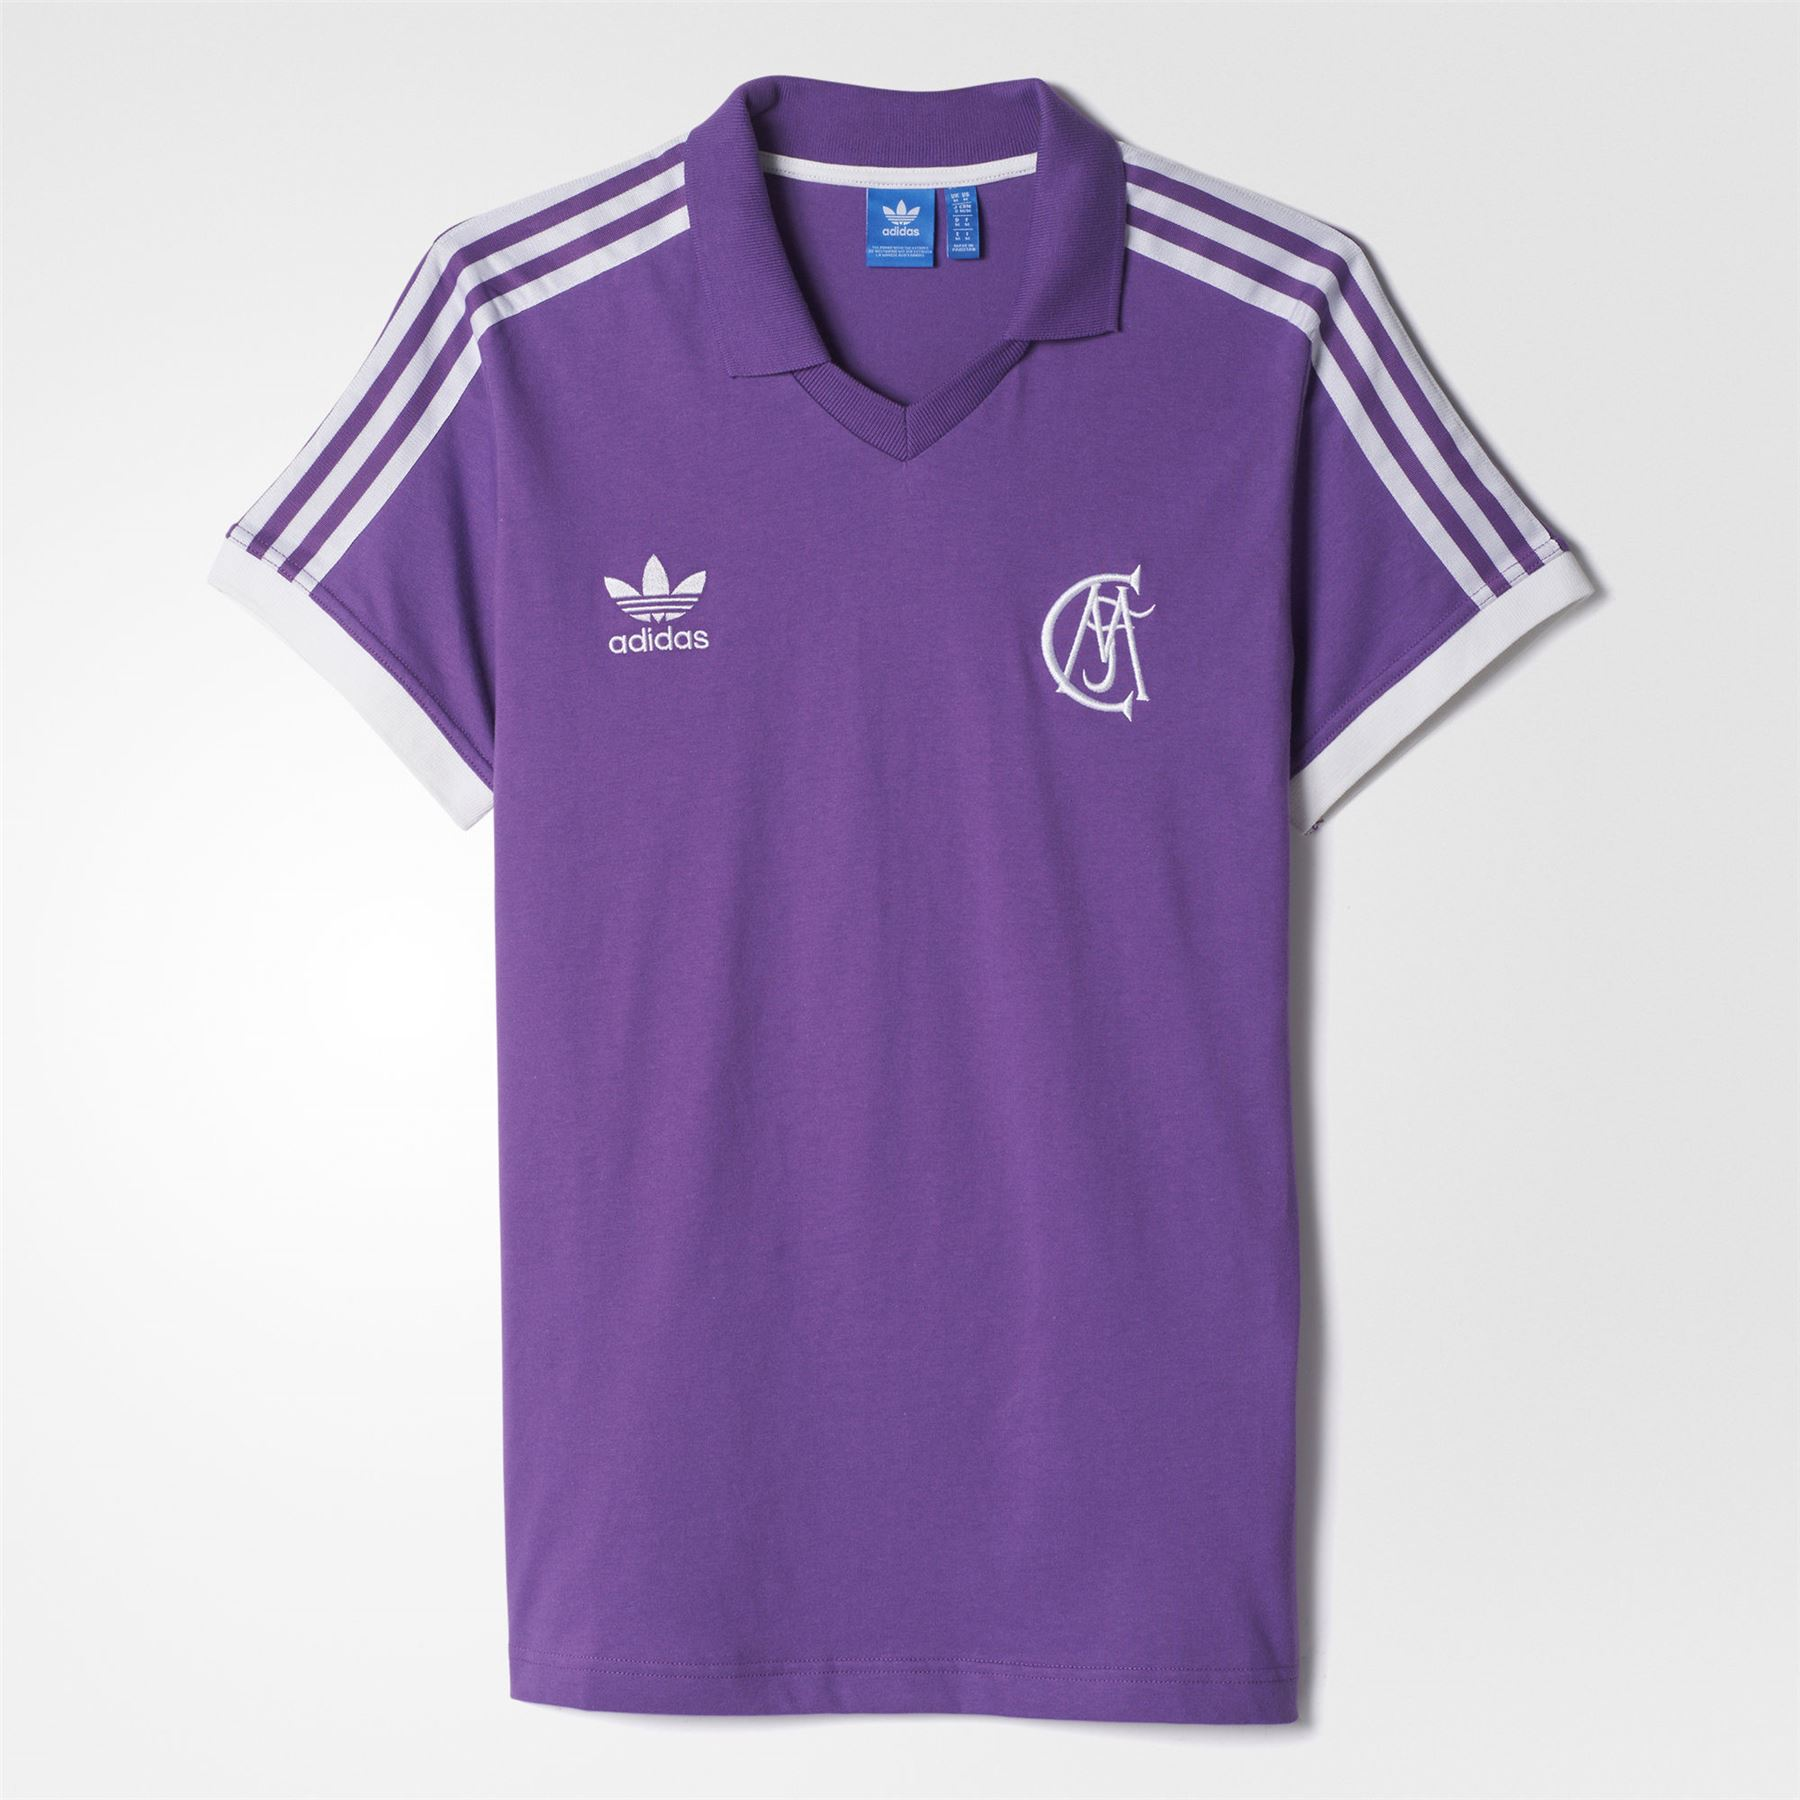 adidas original real madrid